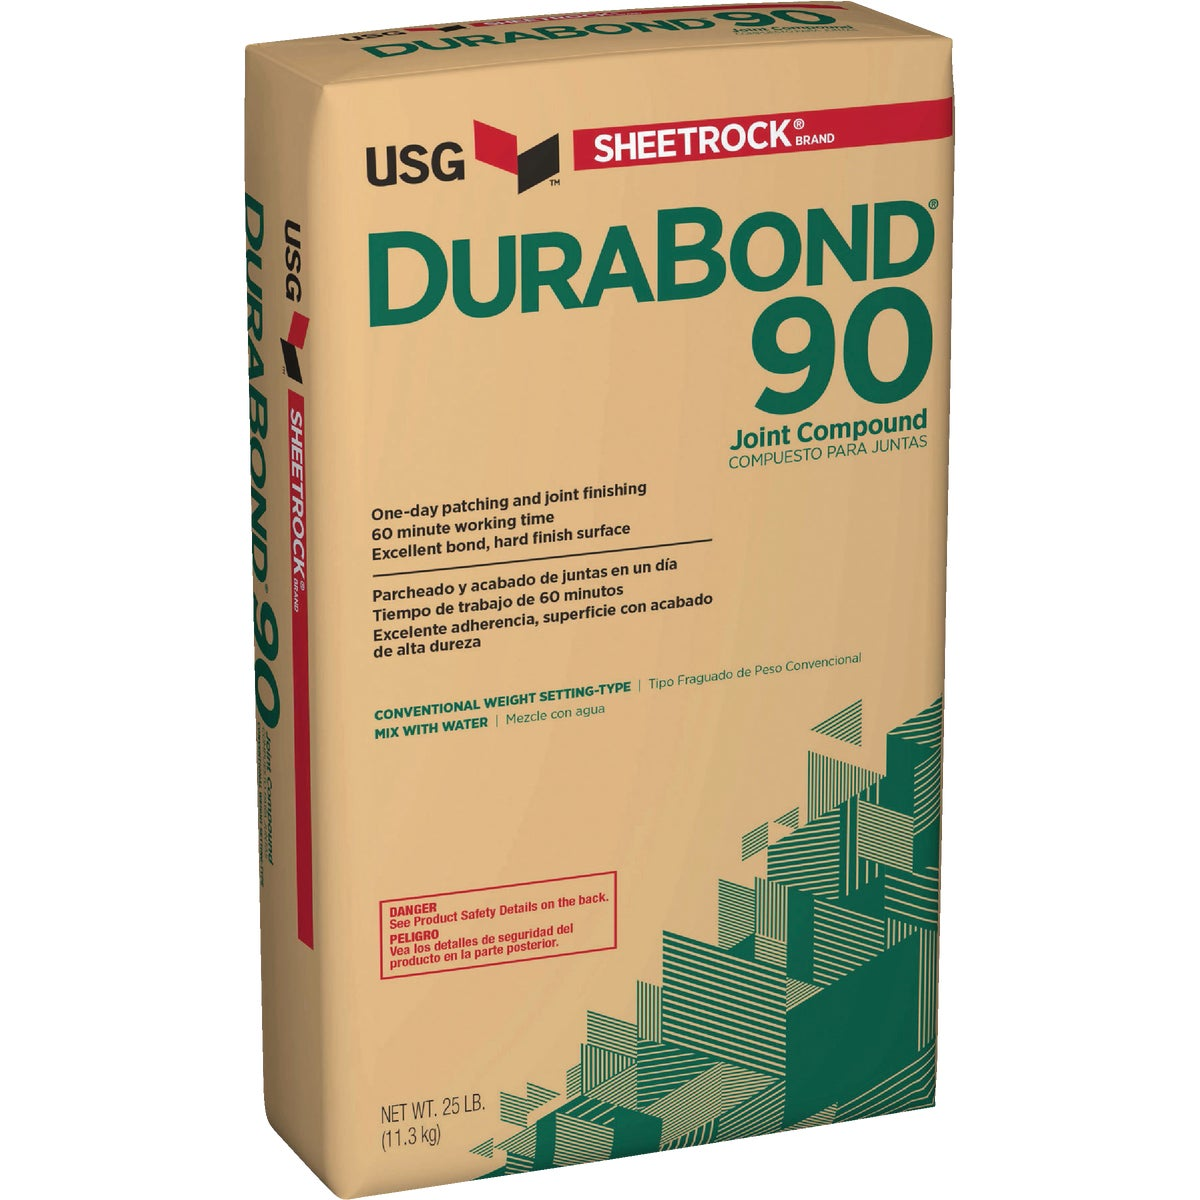 25LB DURABOND90 COMPOUND - 381630 by U S Gypsum